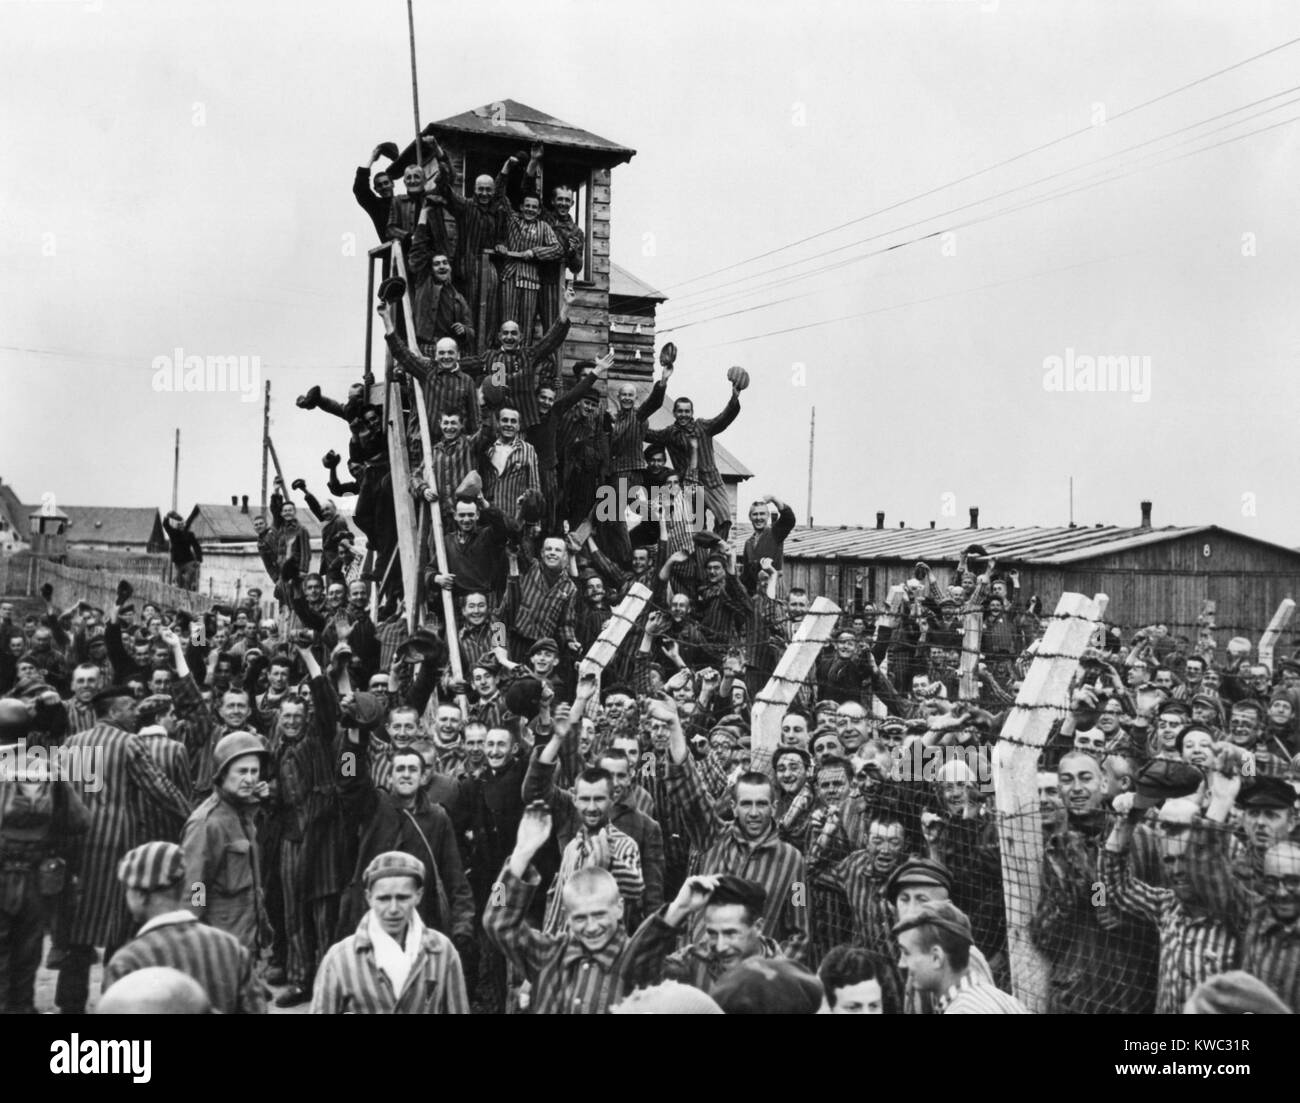 Dachau Prisoners wave and cheer the Seventh US Army liberators. April 29, 1945, World War 2 (BSLOC_2015_13_18) - Stock Image